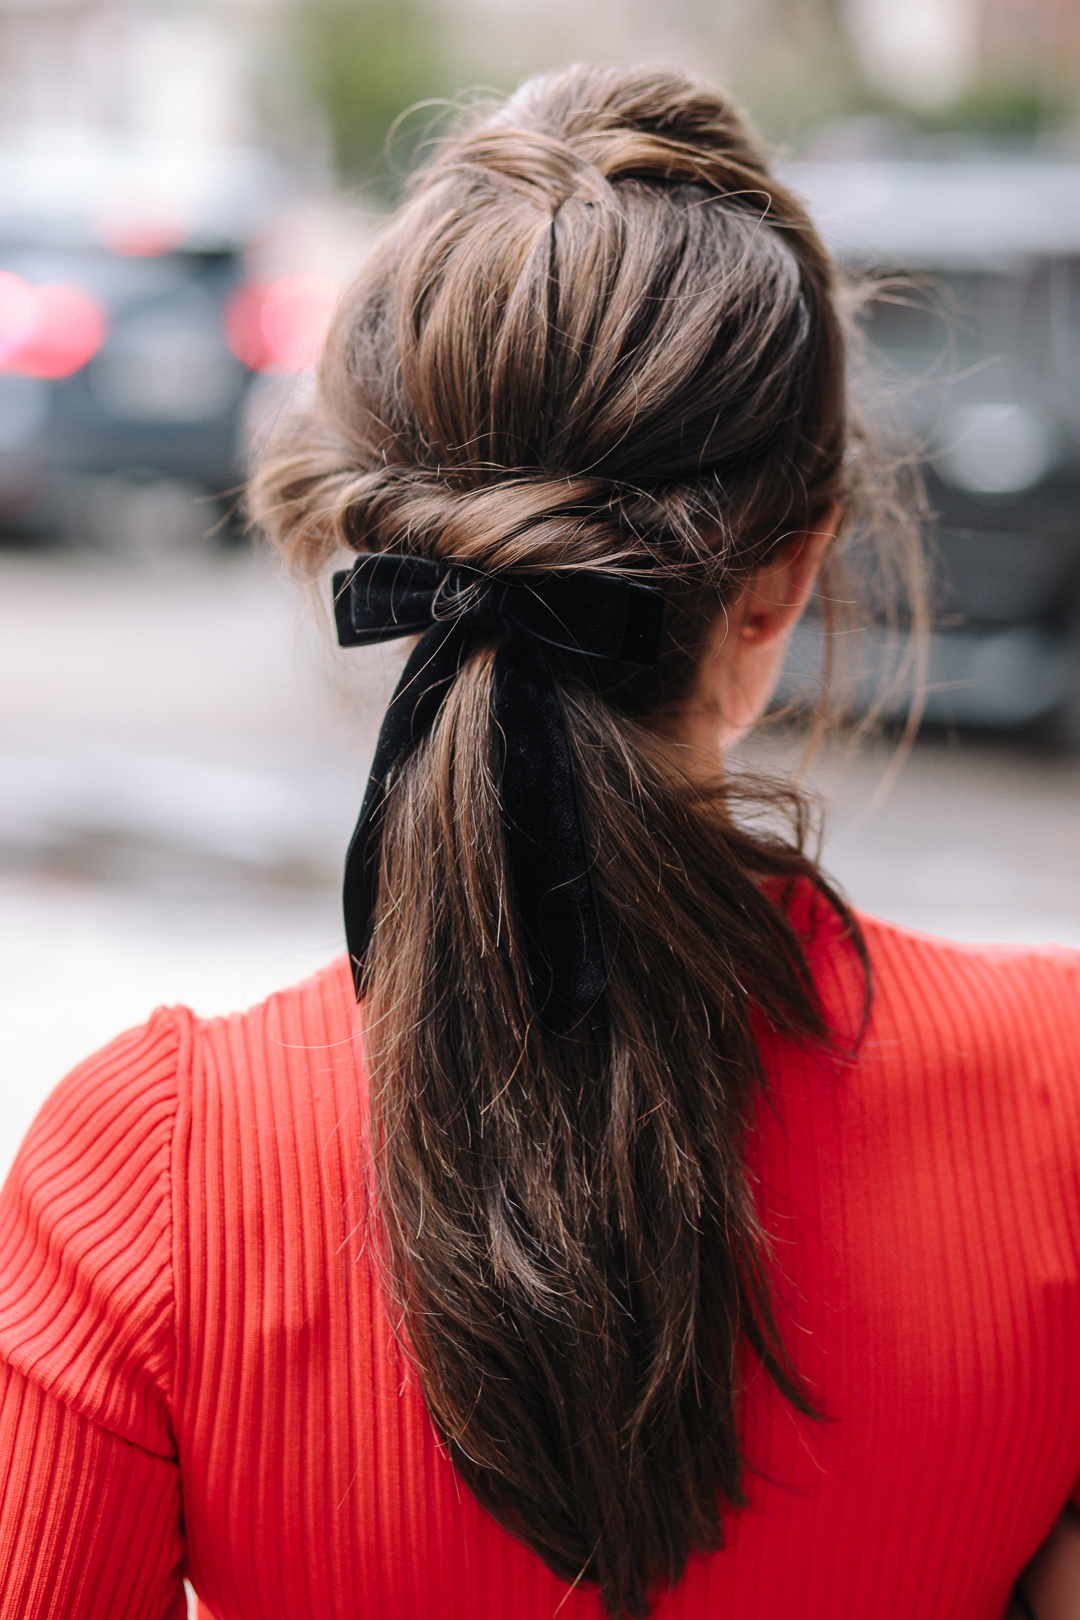 Dress up your ponytail with a cute velvet bow